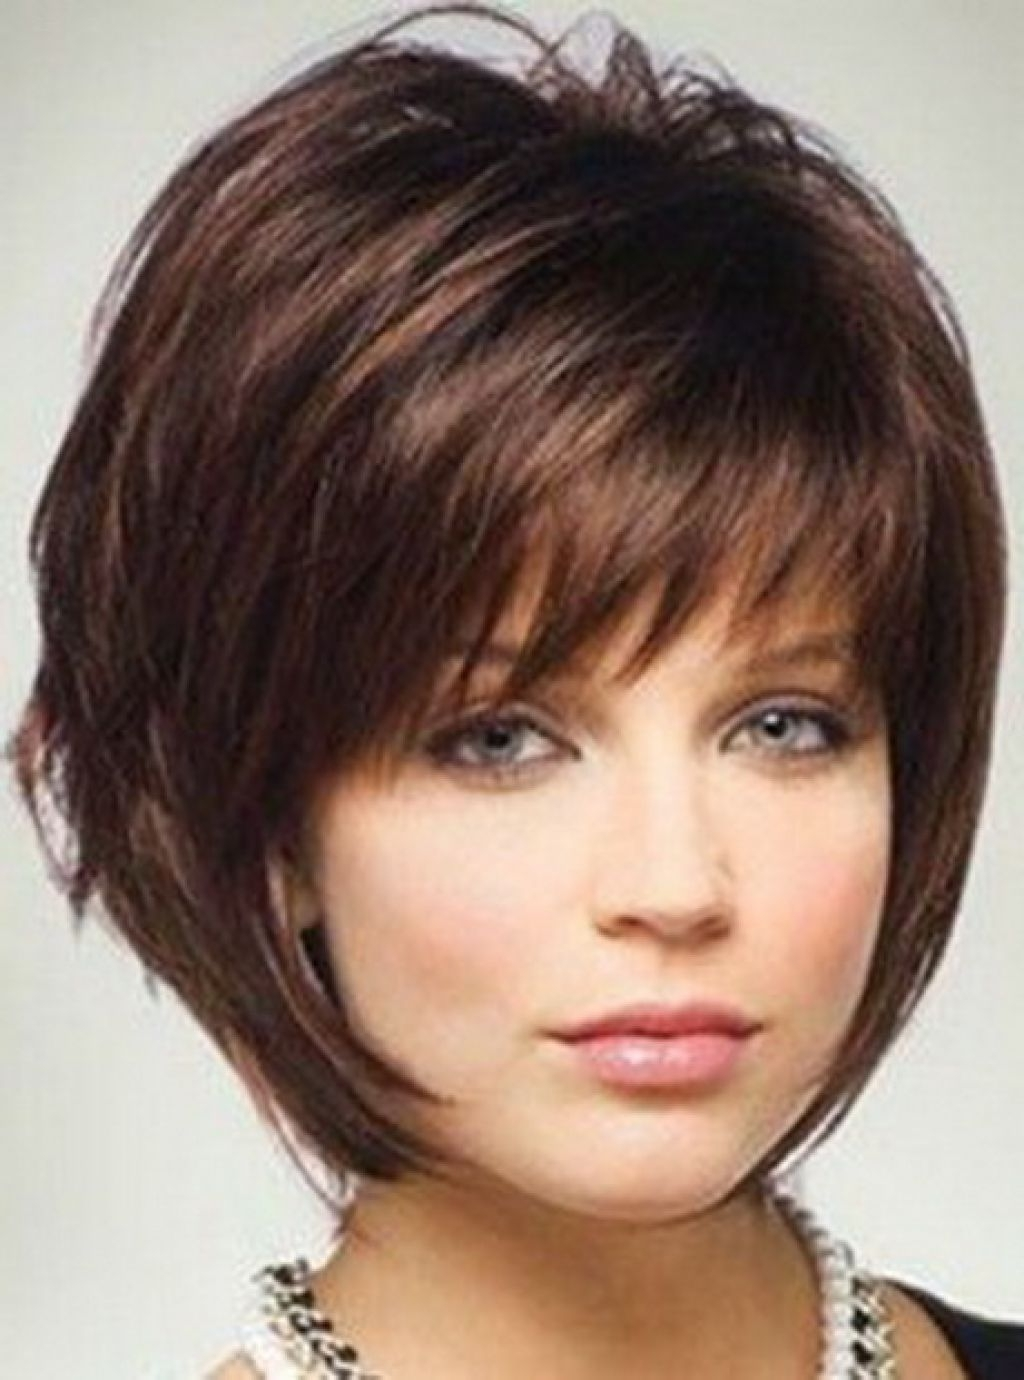 Well Known Shaggy Layered Hairstyles For Short Hair Throughout Short And Shaggy Hairstyles – Hairstyle For Women & Man (View 11 of 15)